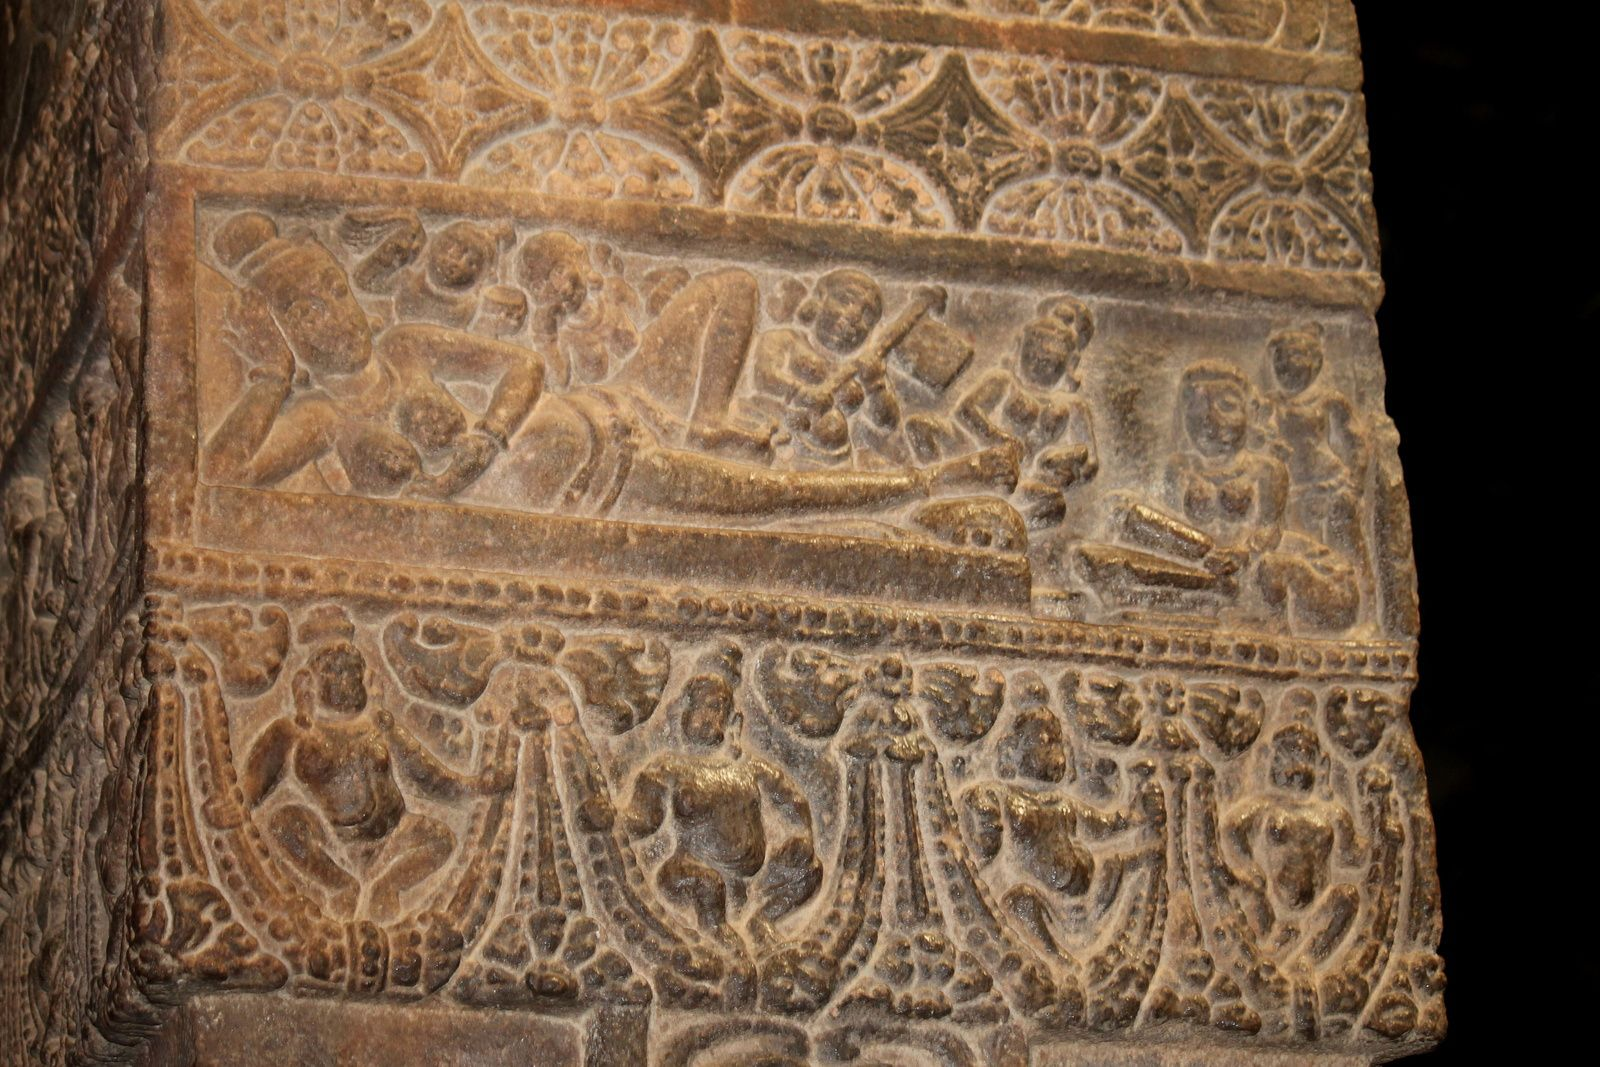 KARNATAKA PLAN D'ENSEMBLE DU SITE ARCHEOLOGIQUE DE PATTADAKAL, LE VIRUPAKSHA